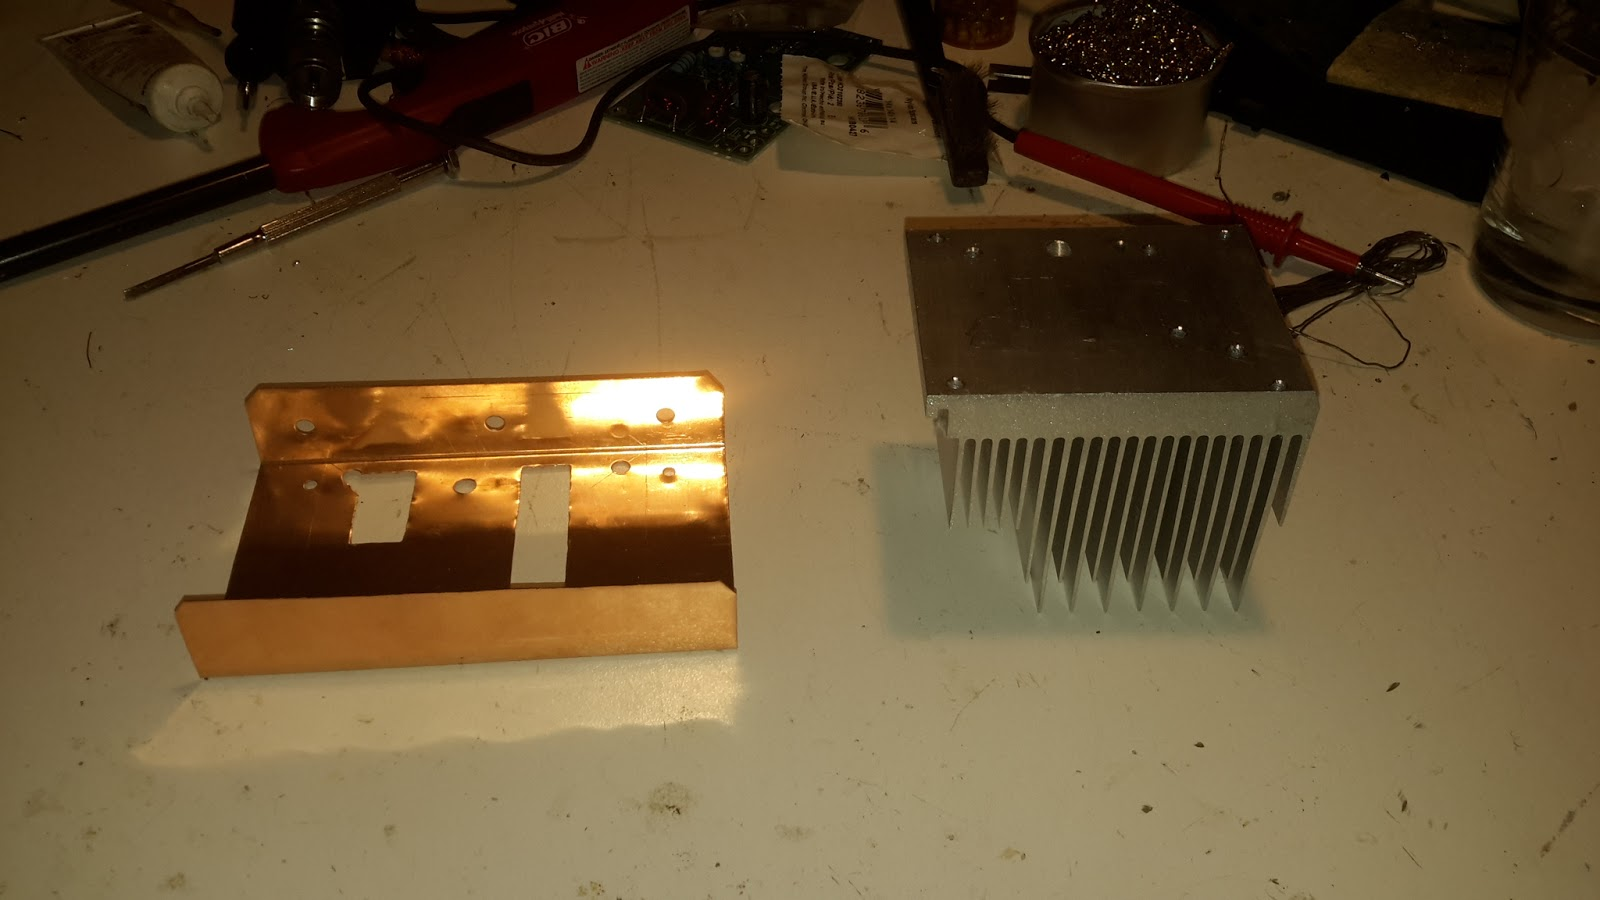 Steves Eclectic Radio Blog 2016 Lm380 Single National Forms Simple Amplifier With Tone And Some Pics Of The Heat Sink Bracket That Ill Be Using During Testing Came From A Junk Pc Is Bent 26 Gauge Copper